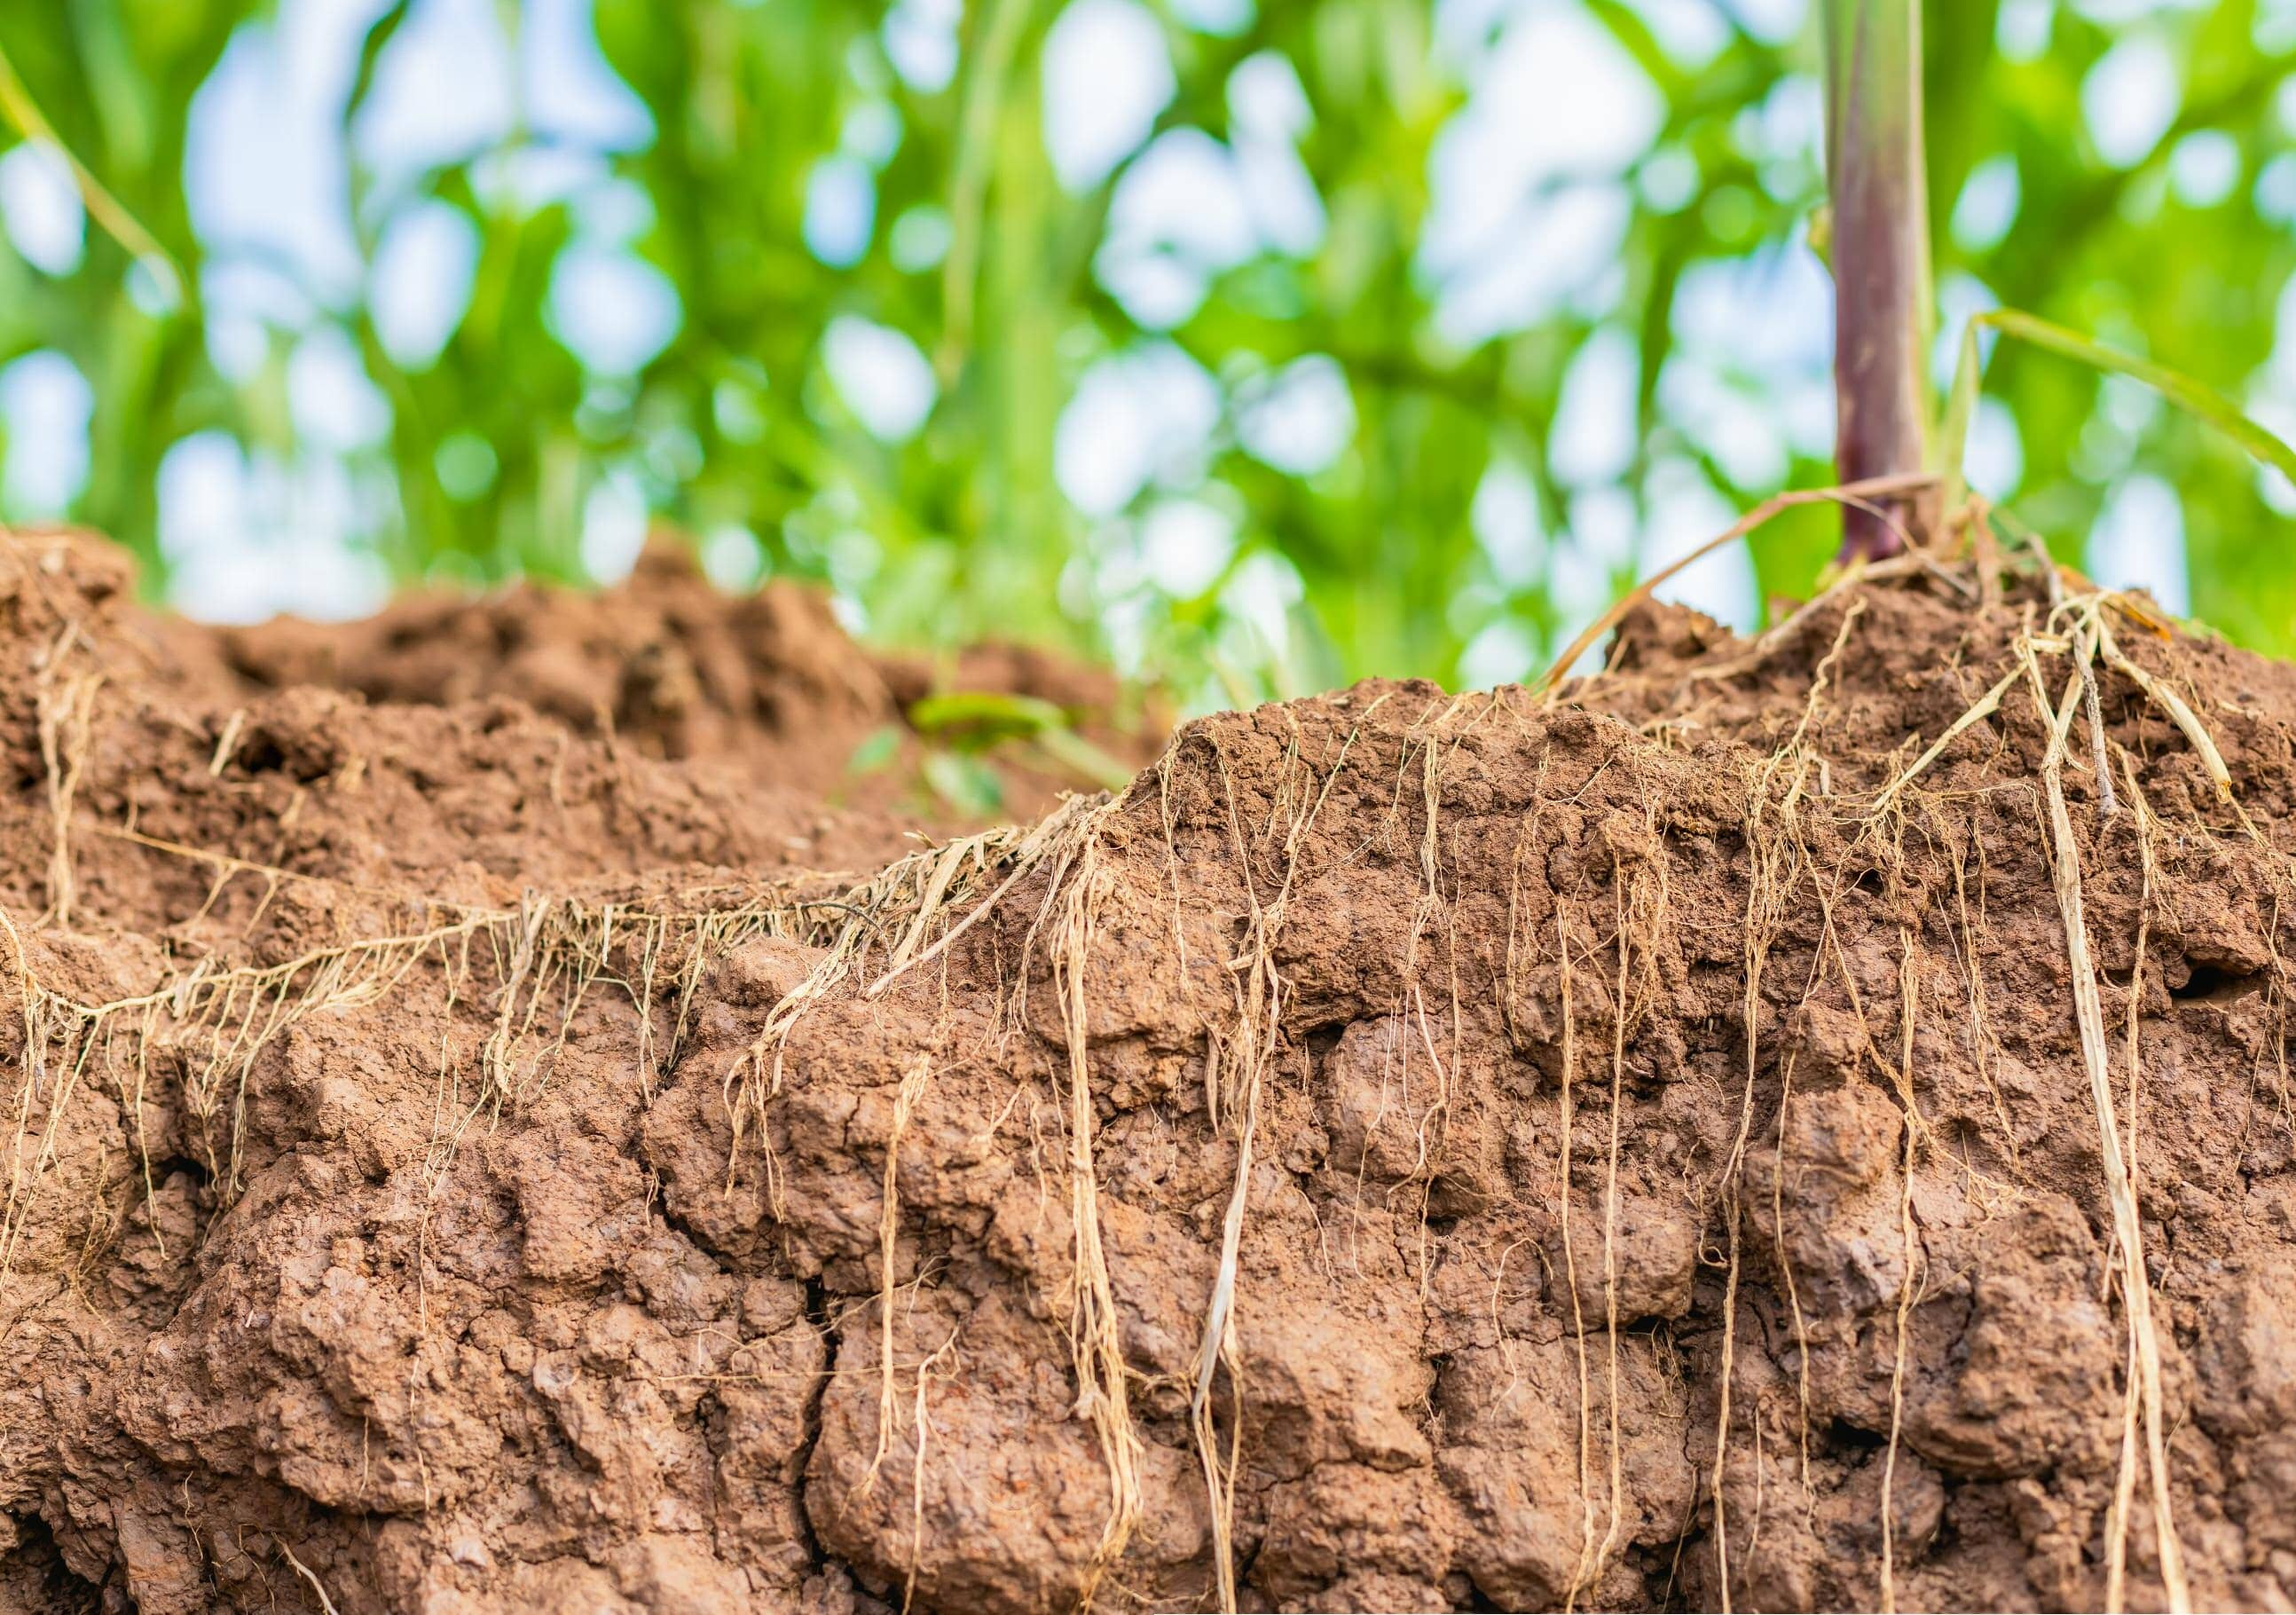 Drought resistant crops for the future